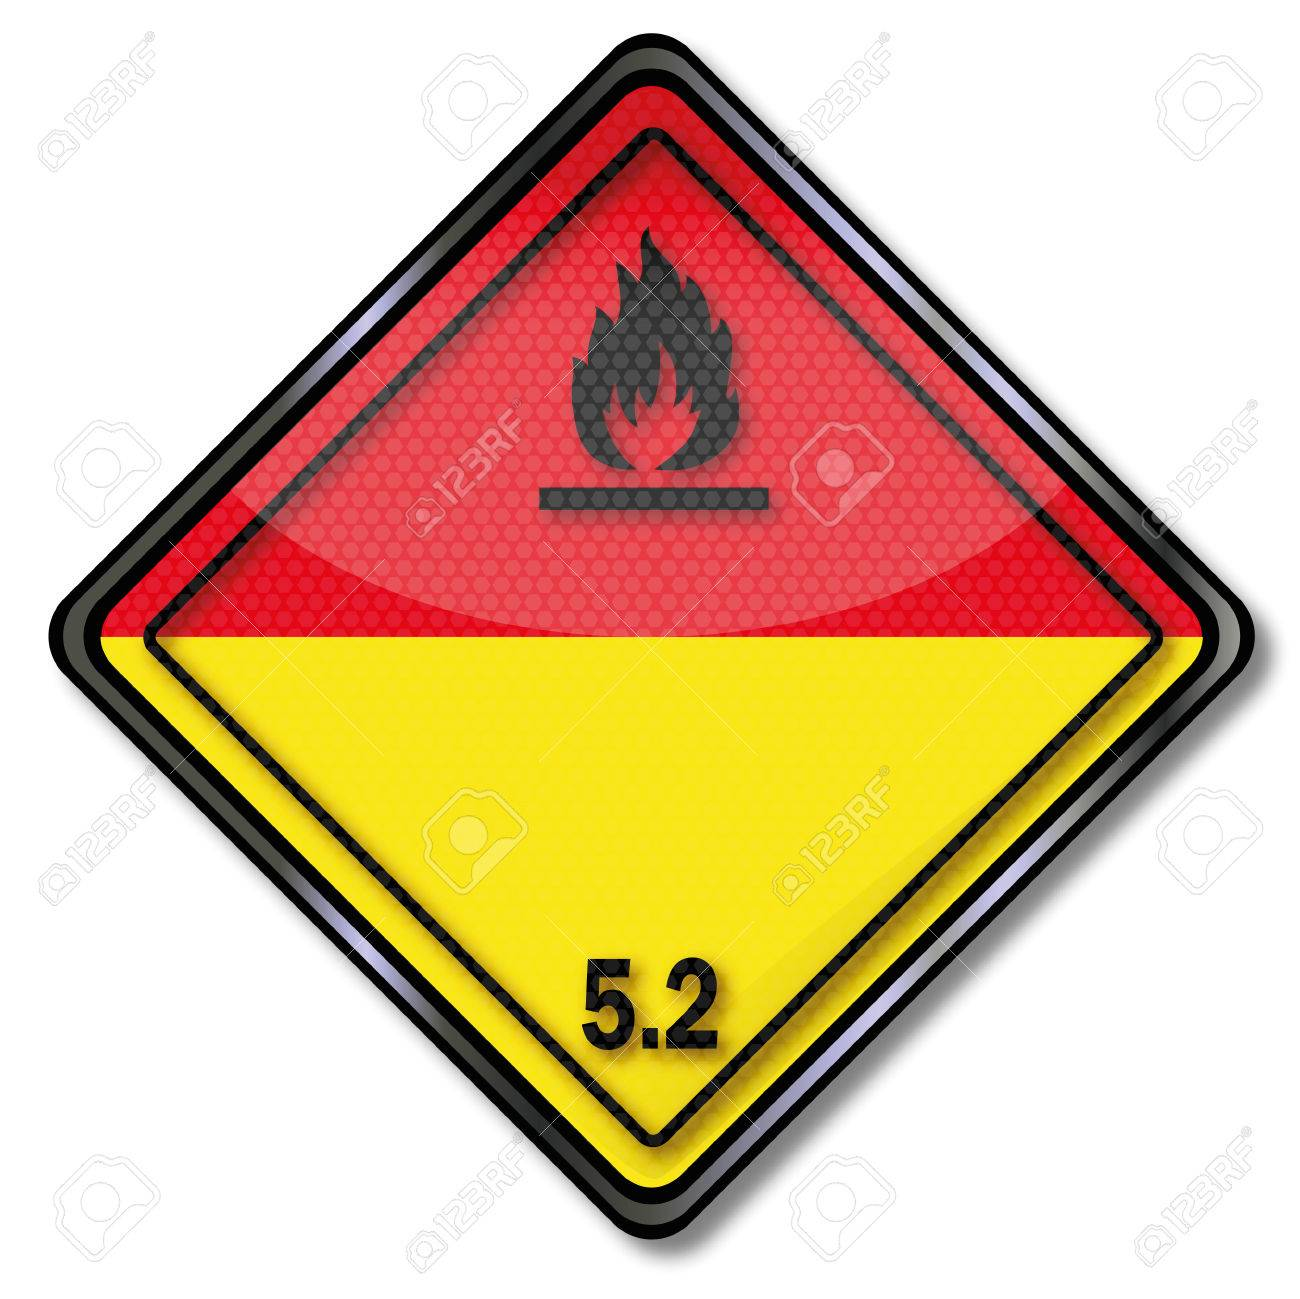 1,312 Hazardous Material Stock Vector Illustration And Royalty ...